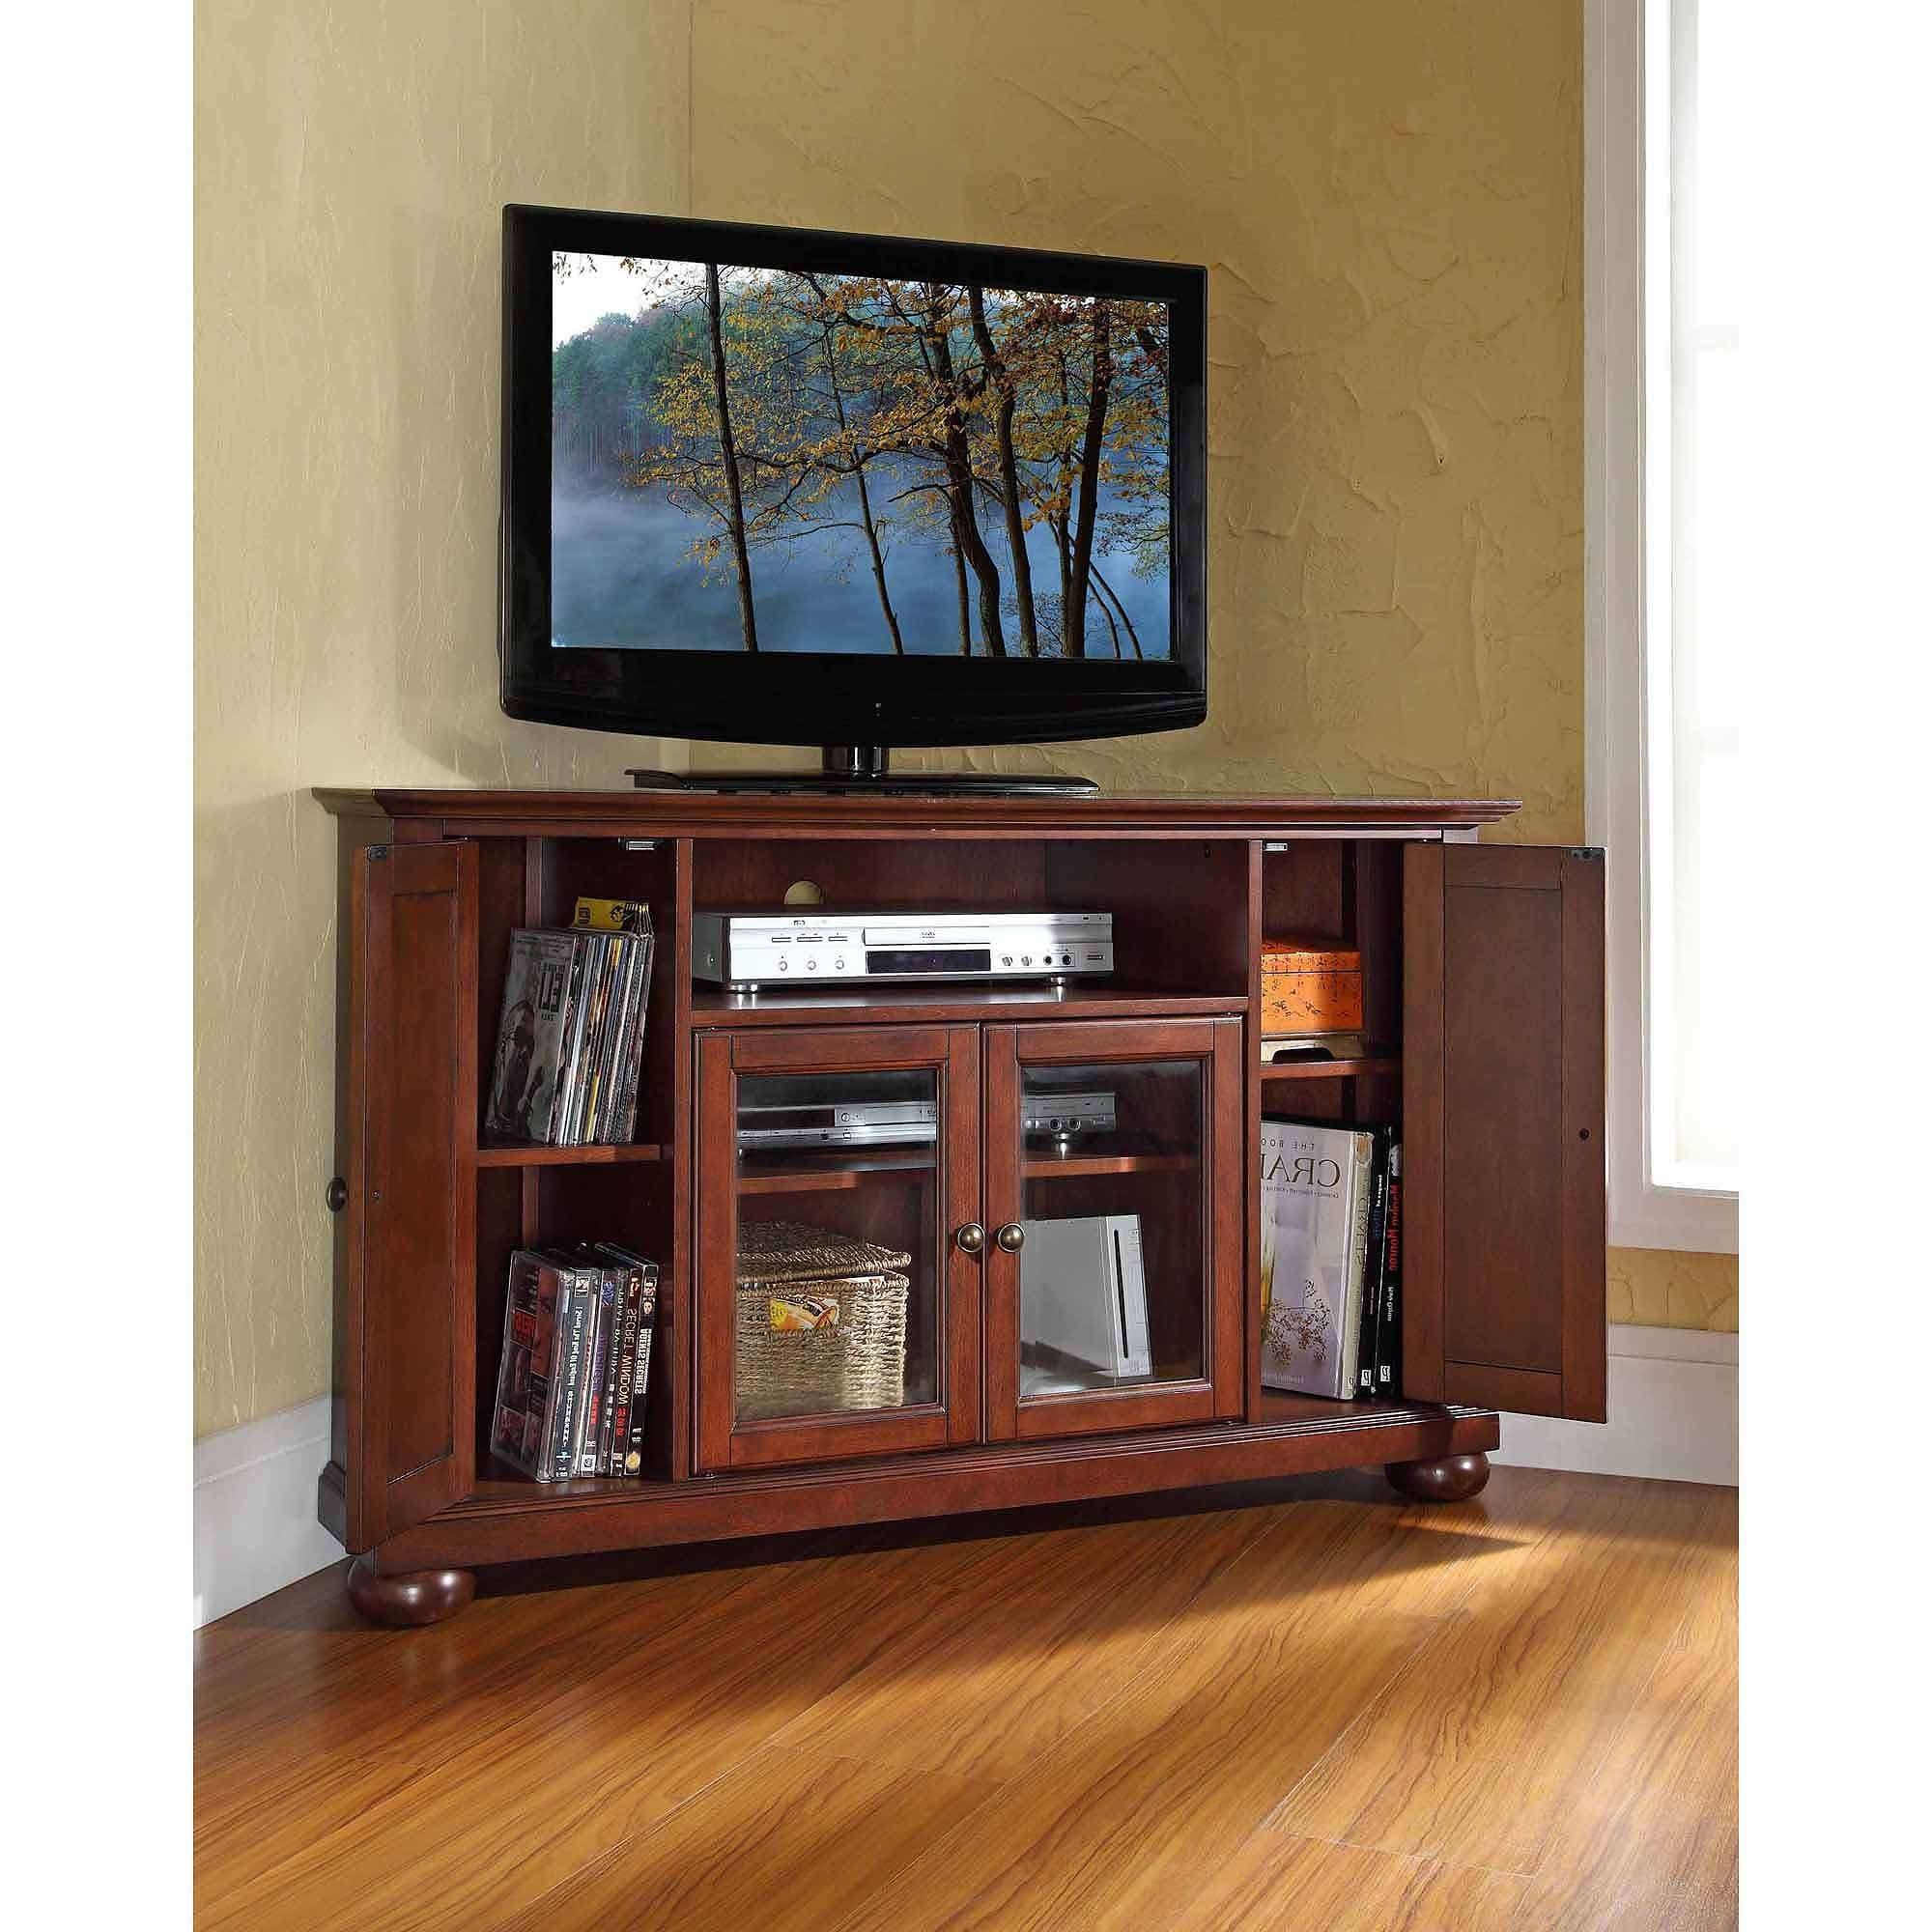 Tv Stand : Stirring Corner Tv Stand For Inch Photo Concept Flat Within Triangular Tv Stands (View 12 of 15)